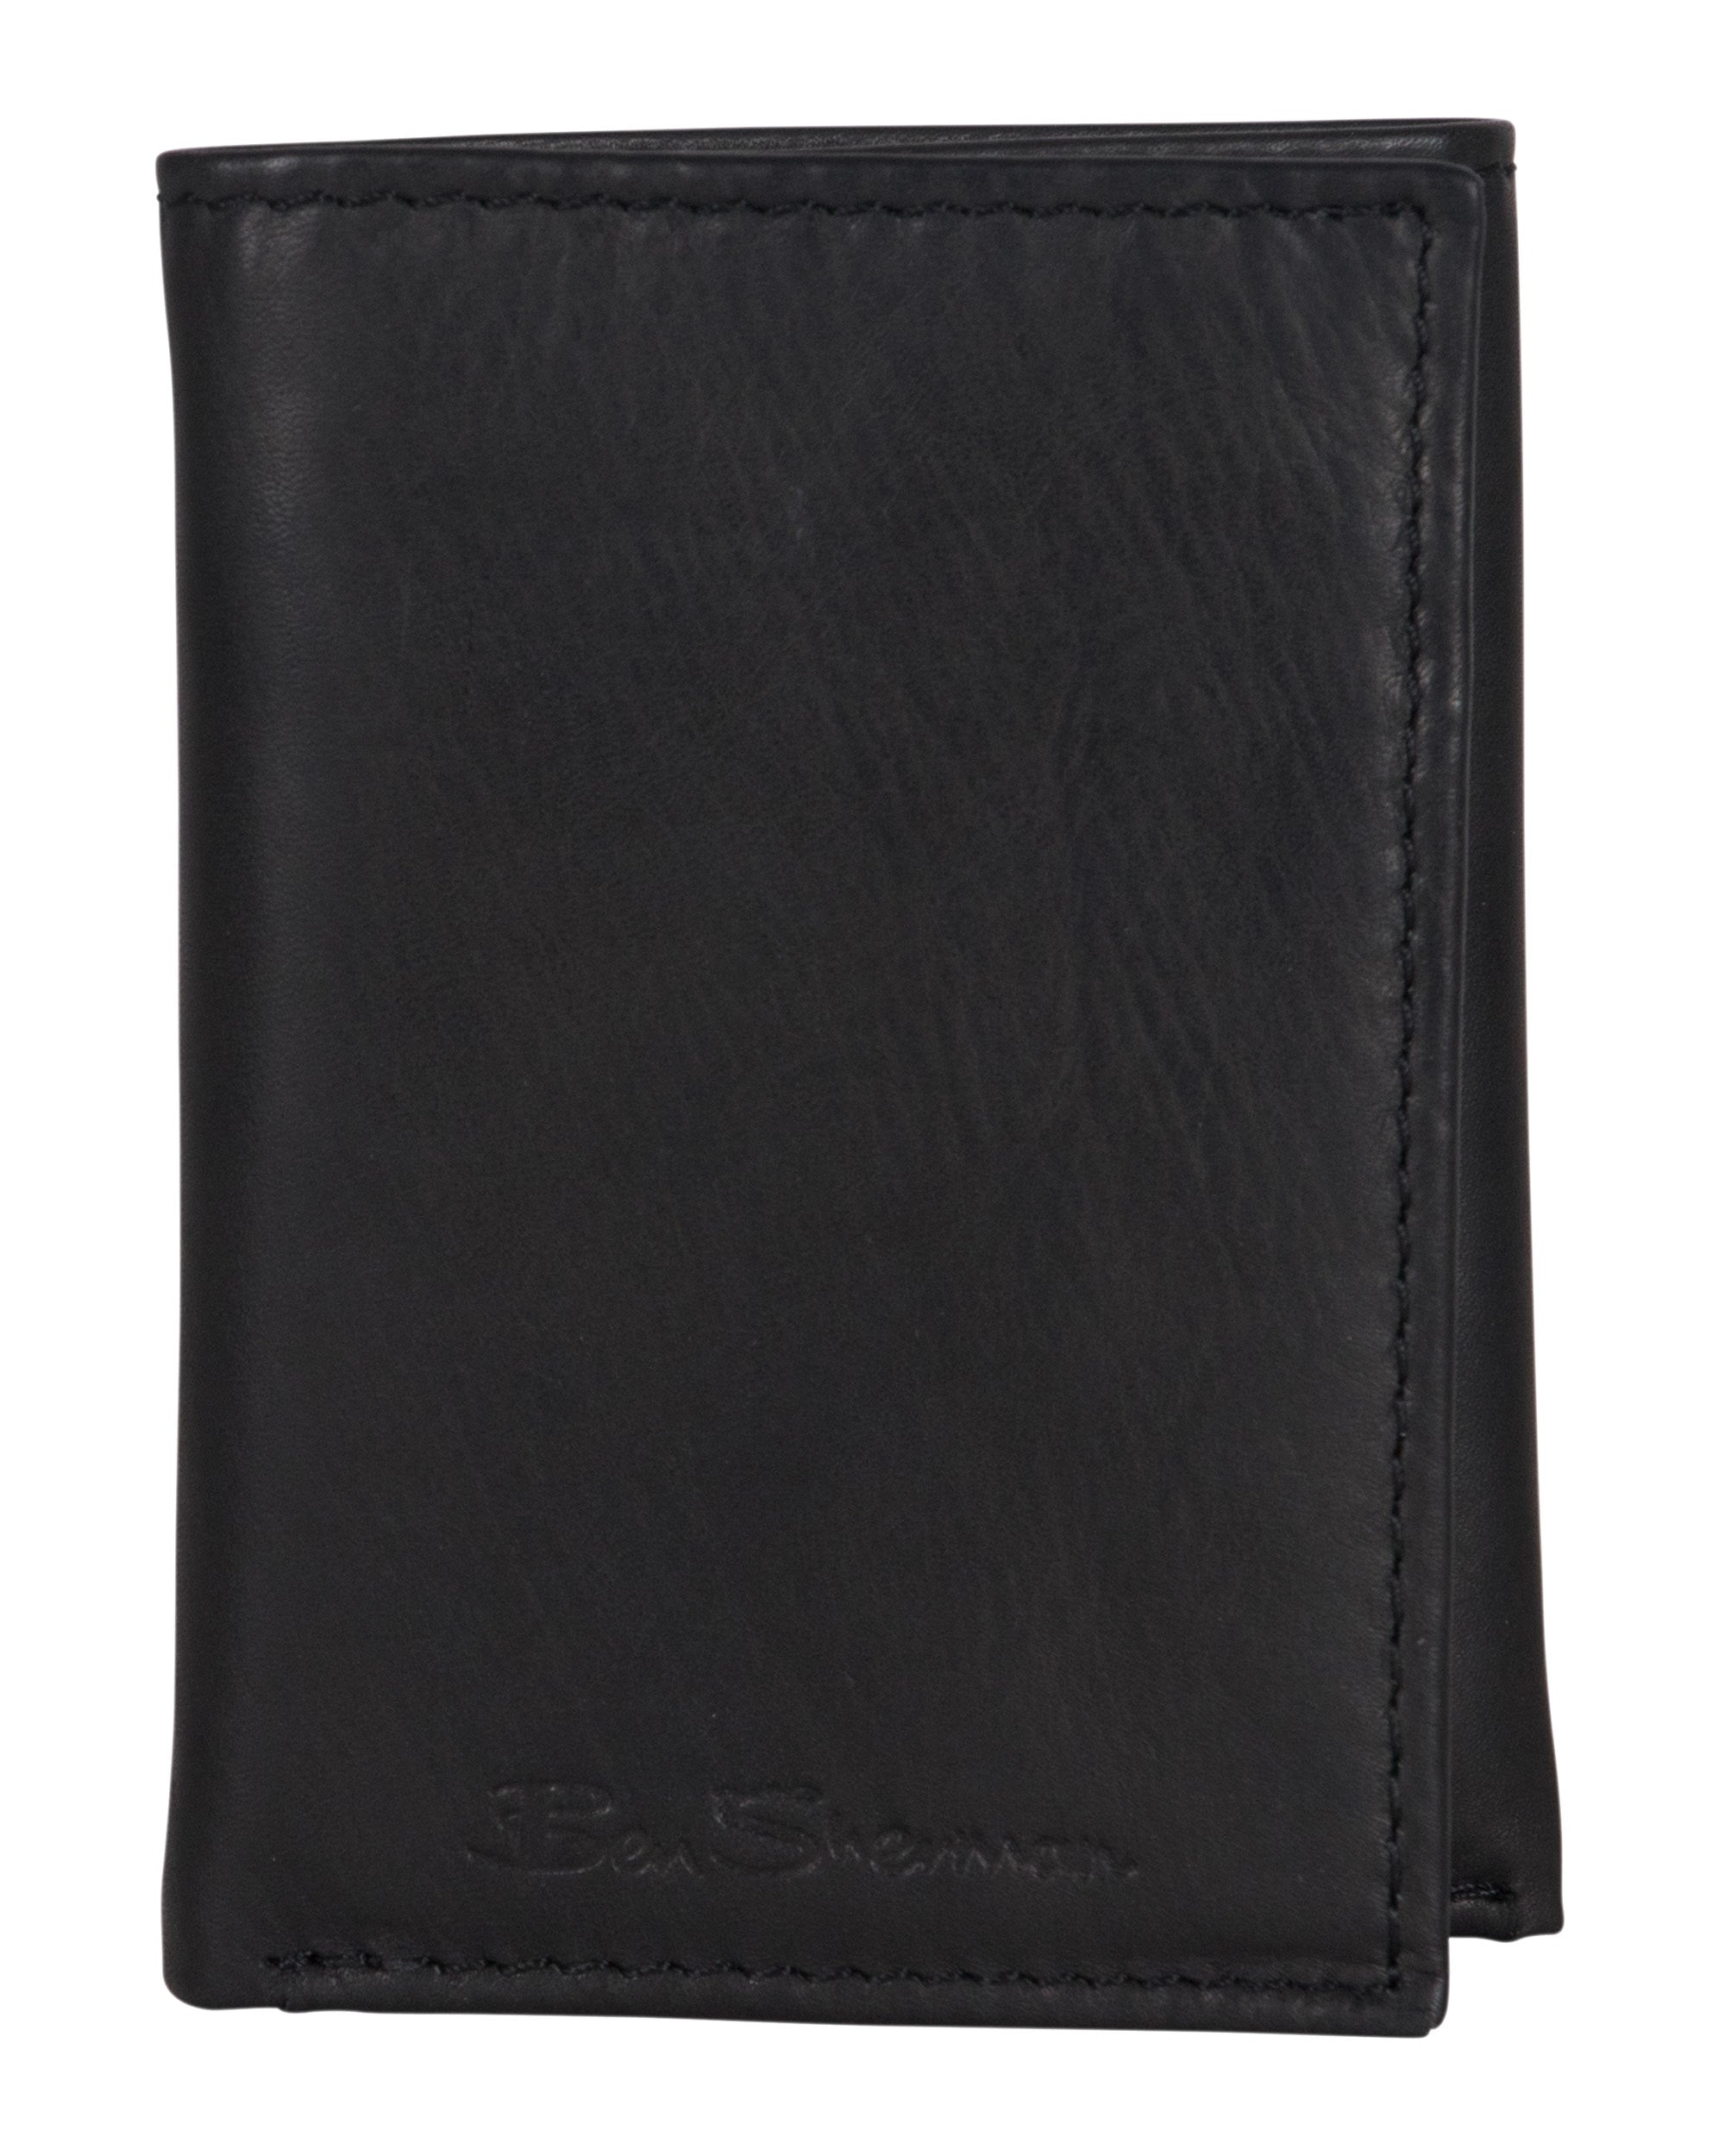 Manchester Marble Crunch Leather Trifold Wallet - Black